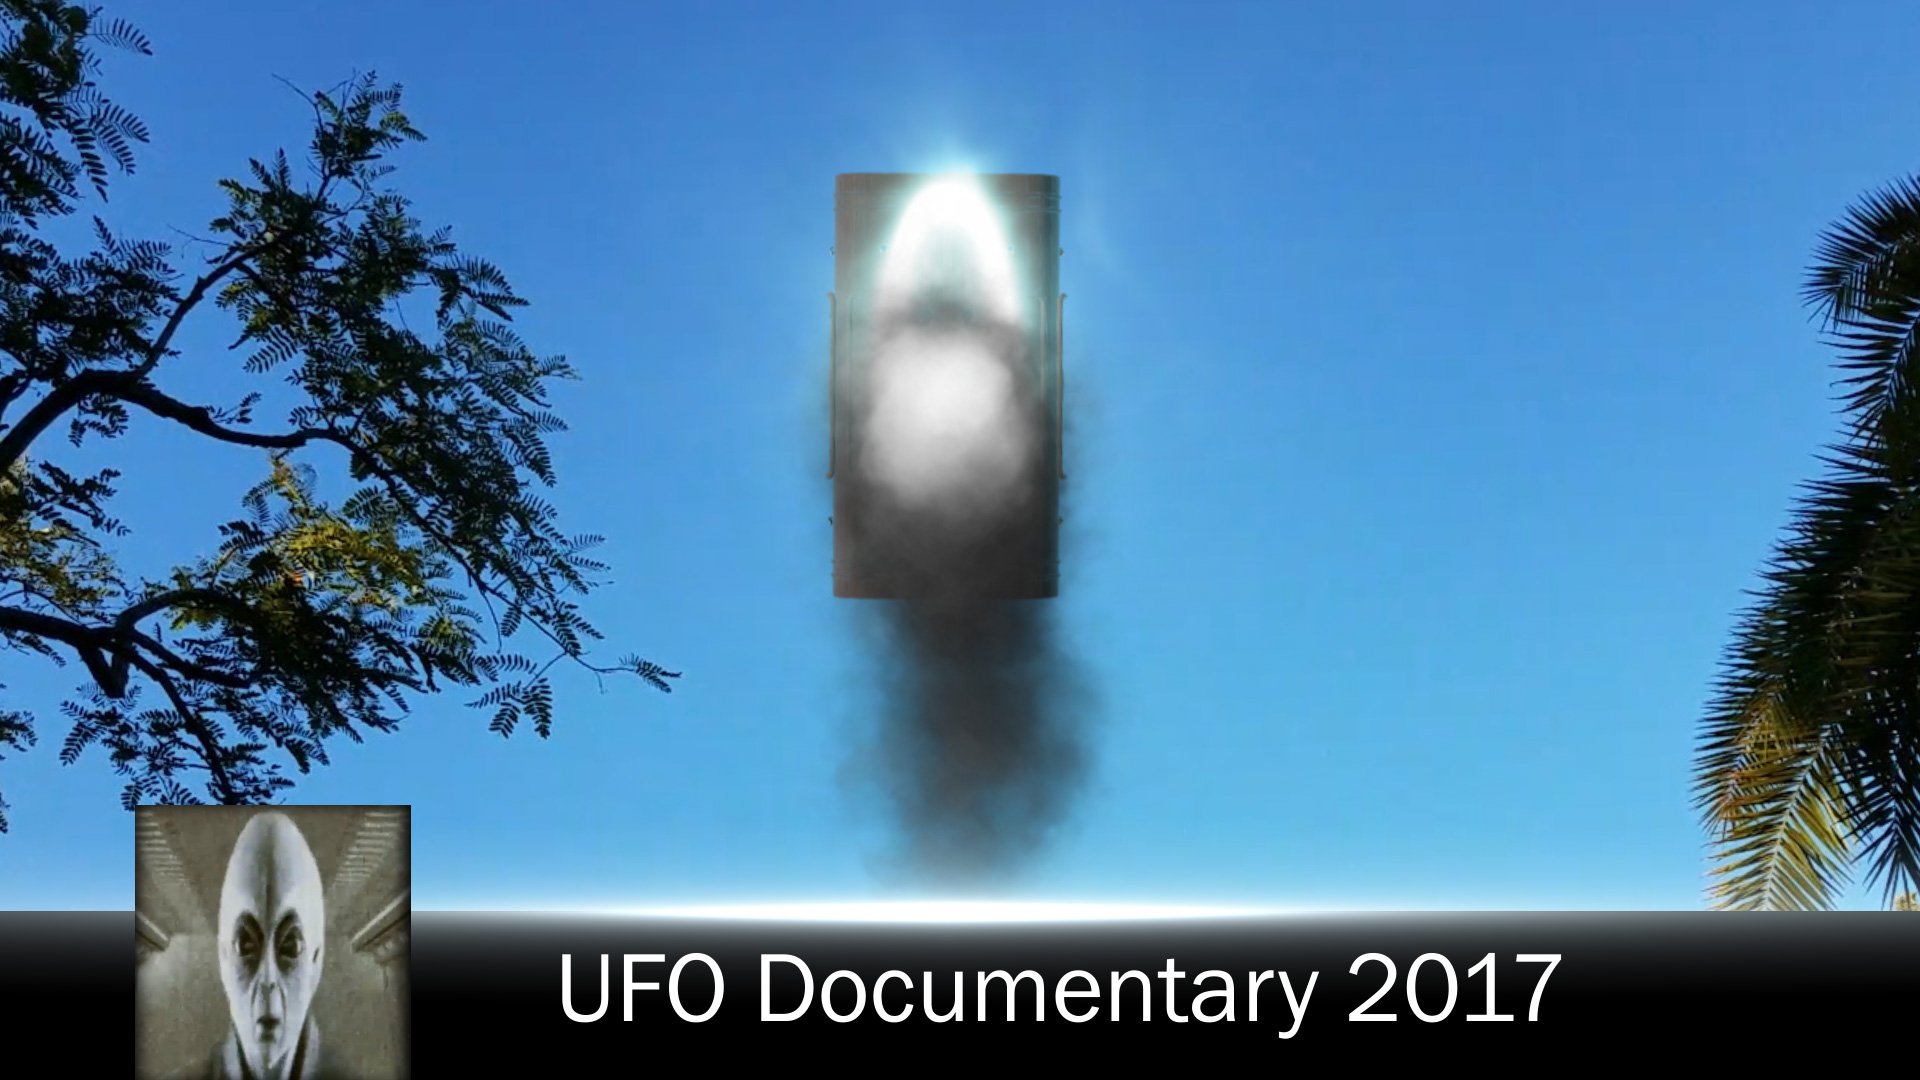 UFO Documentary June 27th 2017